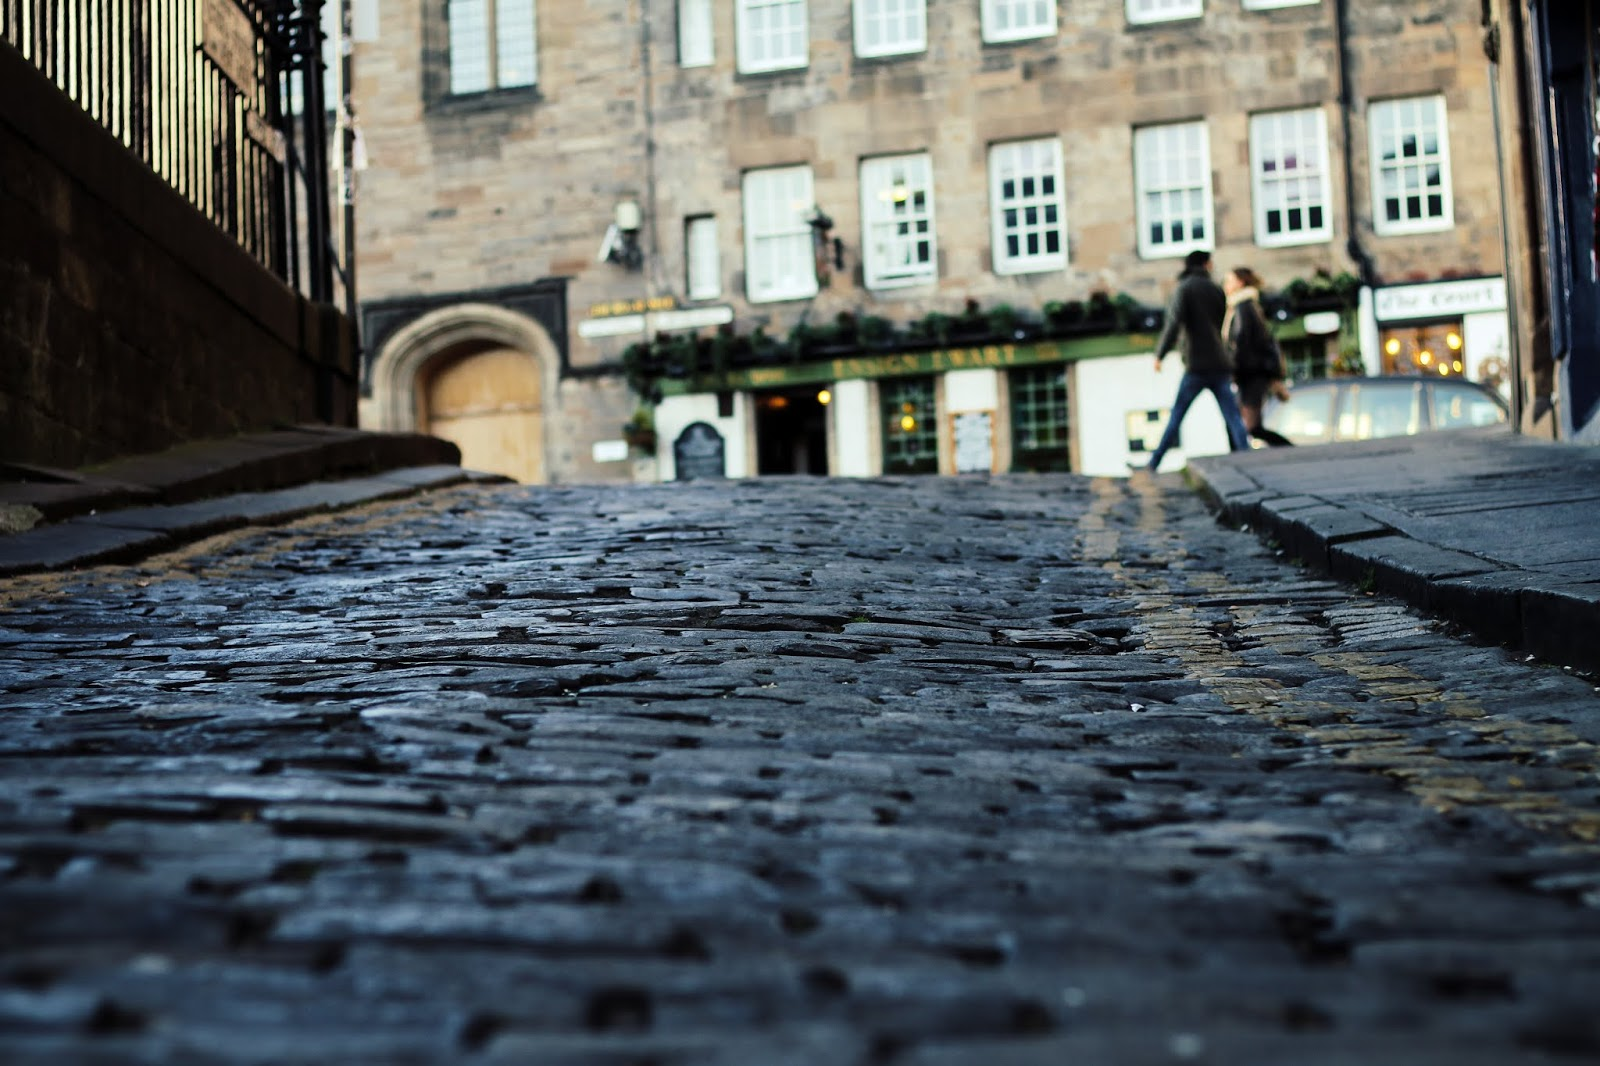 a close up of some cobble stones in Edinburgh on the street of the royal mile